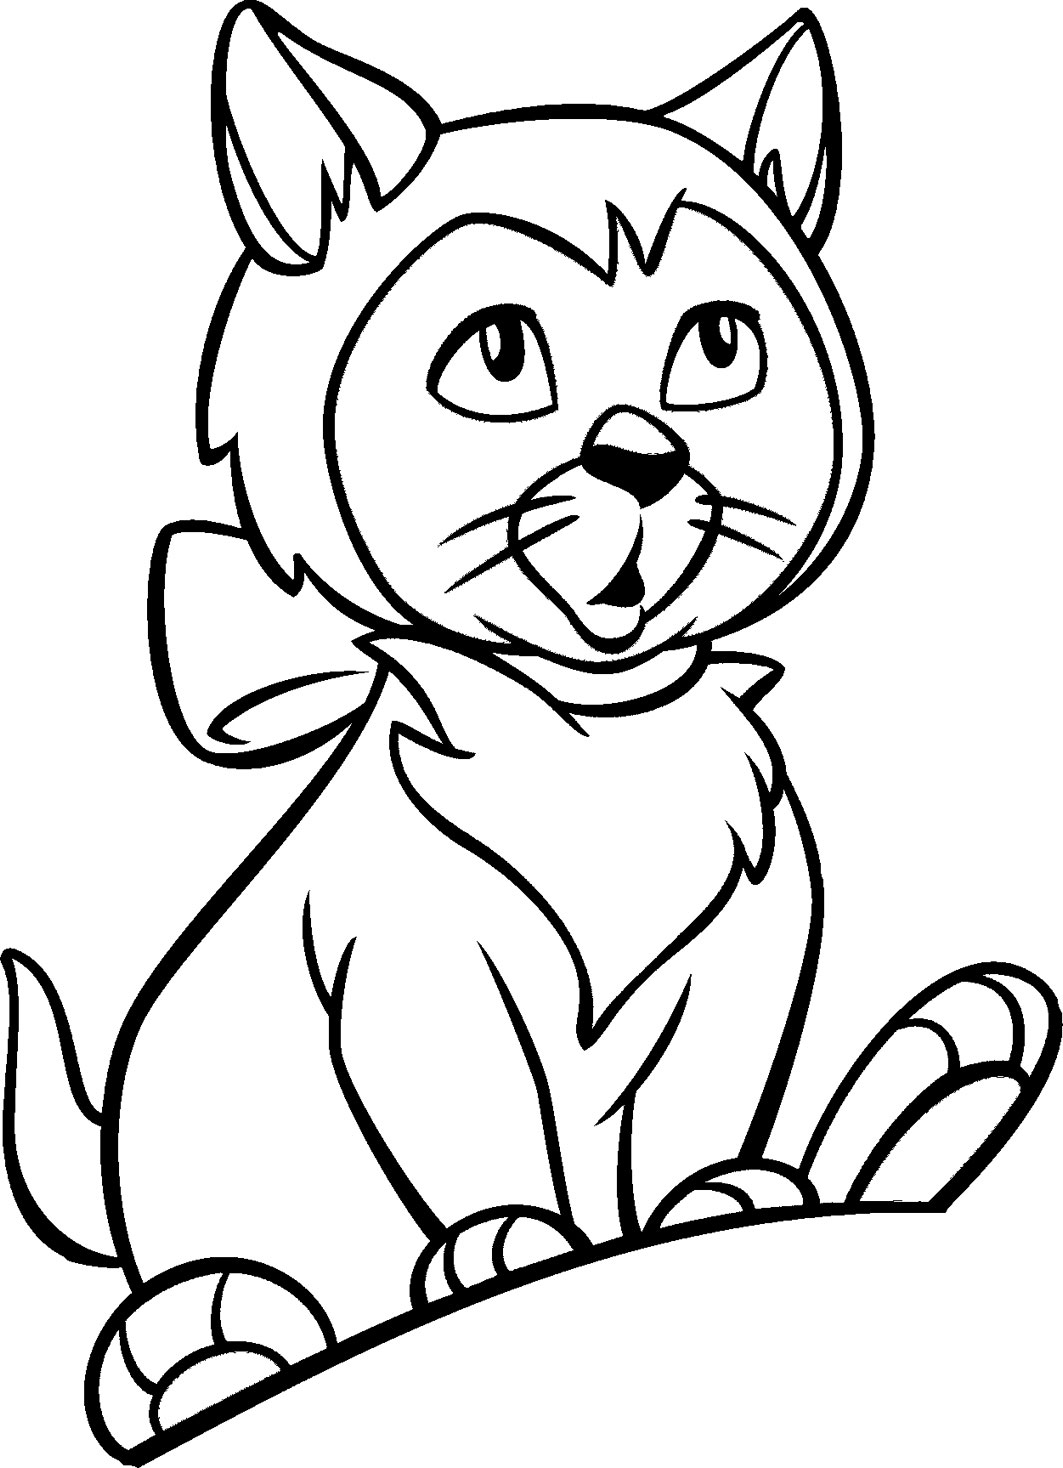 kitty coloring get this hello kitty coloring pages printable gsy4m coloring kitty